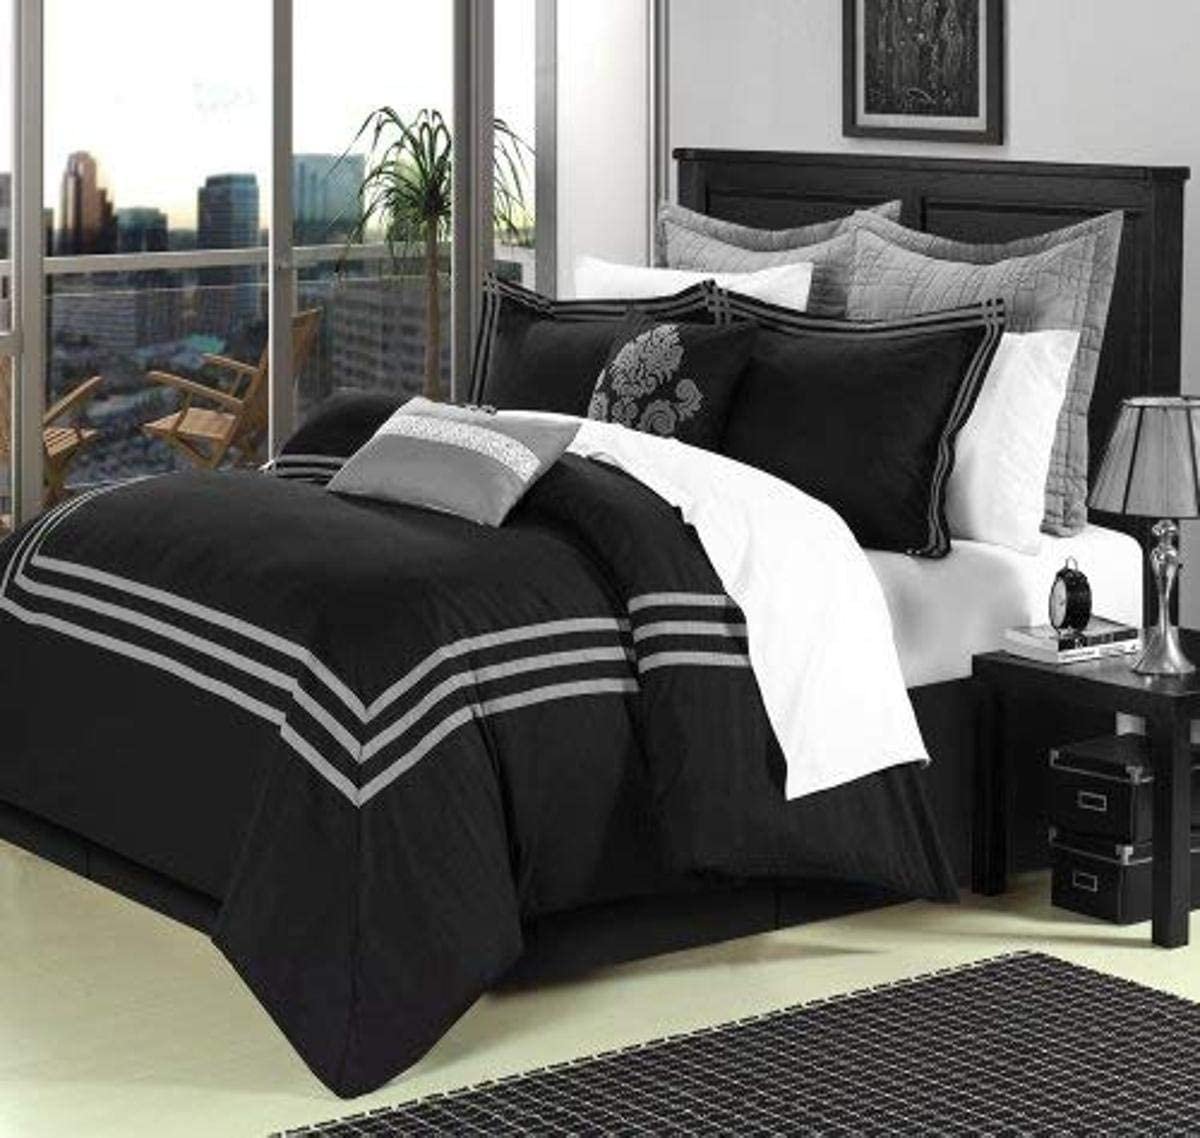 Chic Home Cosmo 8 Piece Comforter Set Embroidered Hotel Collection with Pillow Shams, King Black